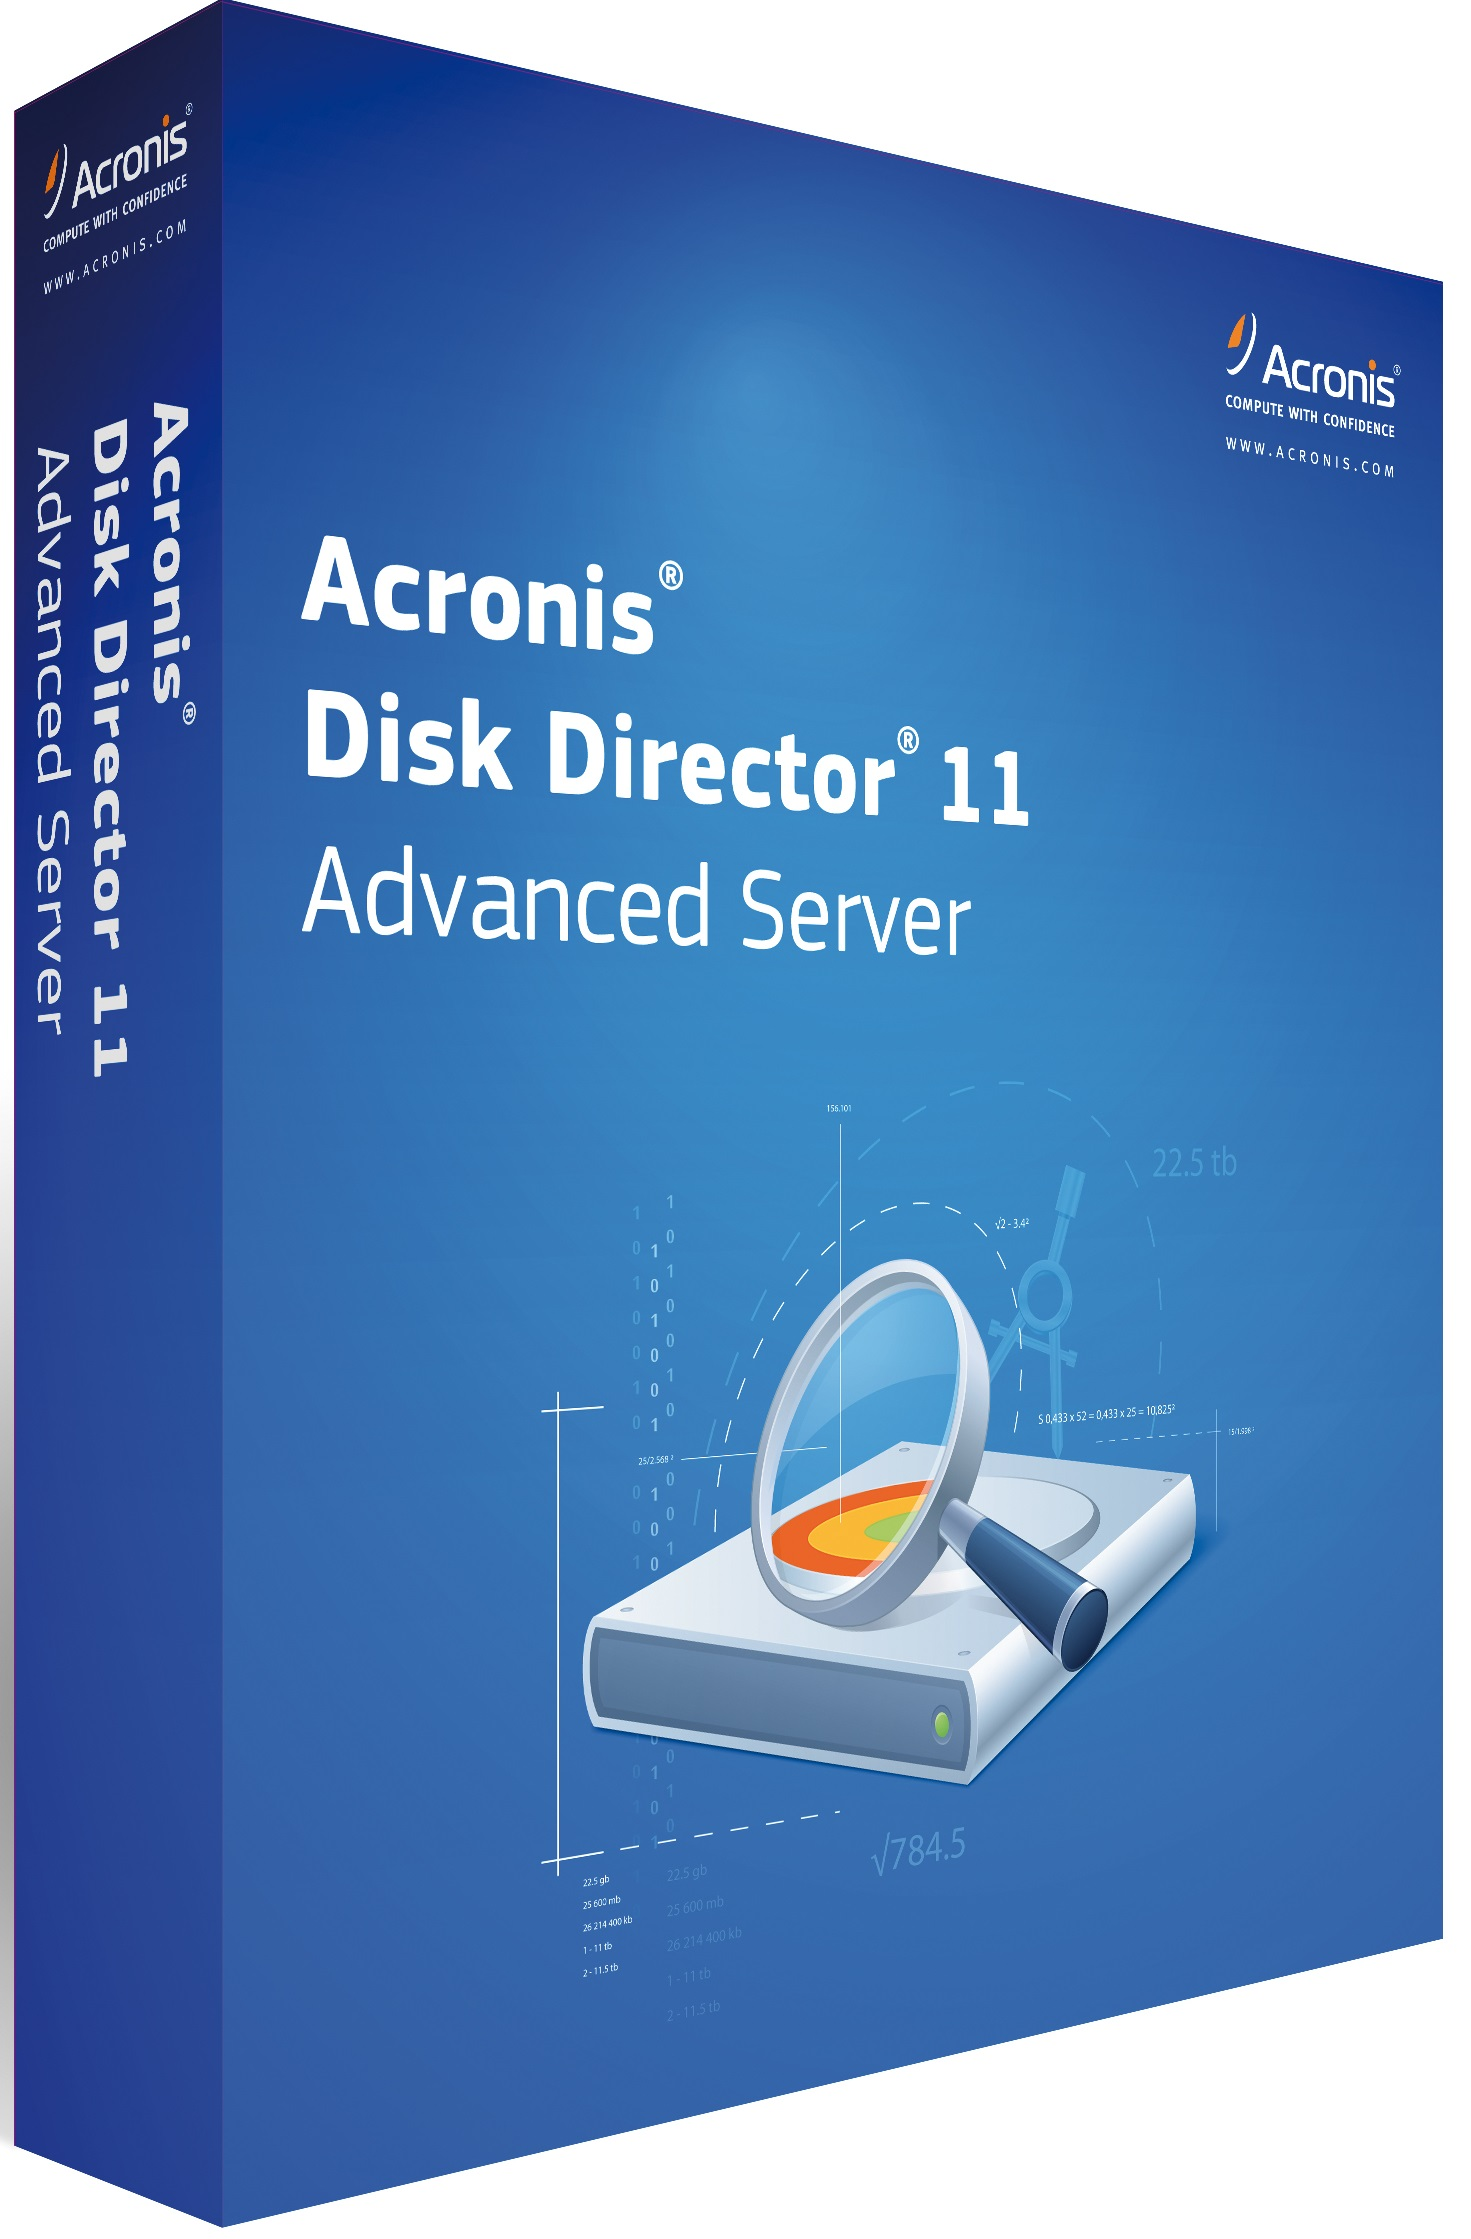 ������ Acronis Disk Director 11 Advanced Server incl. AAP ESD D1SMLP??S2? �� ��������� ����